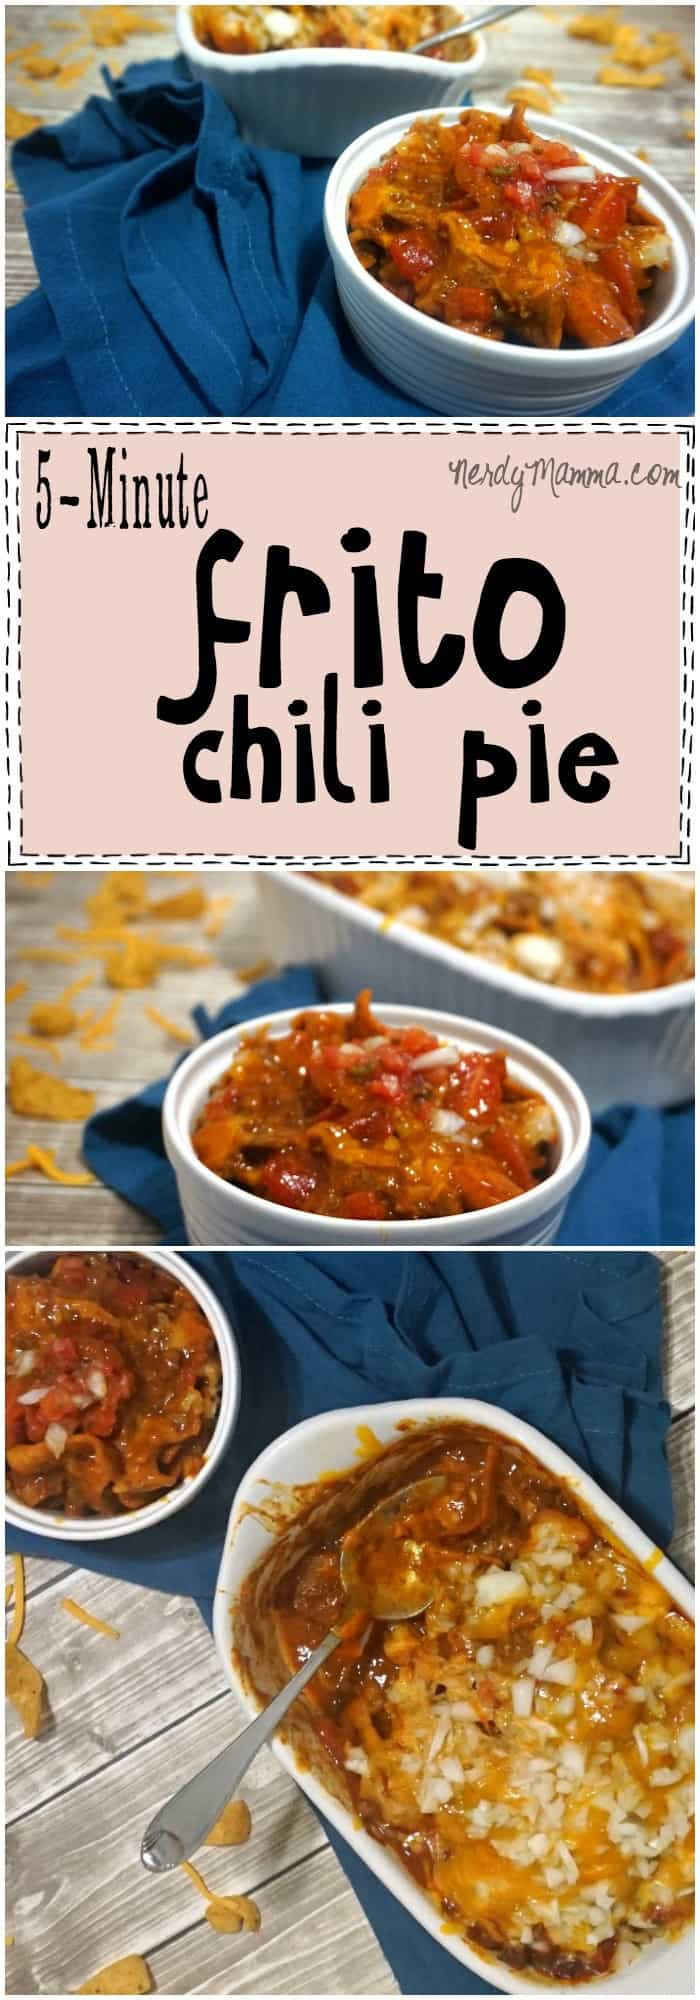 This recipe for 5-minute Frito Chili Pie is so RIDICULOUSLY easy. And sounds amazing...I love it.